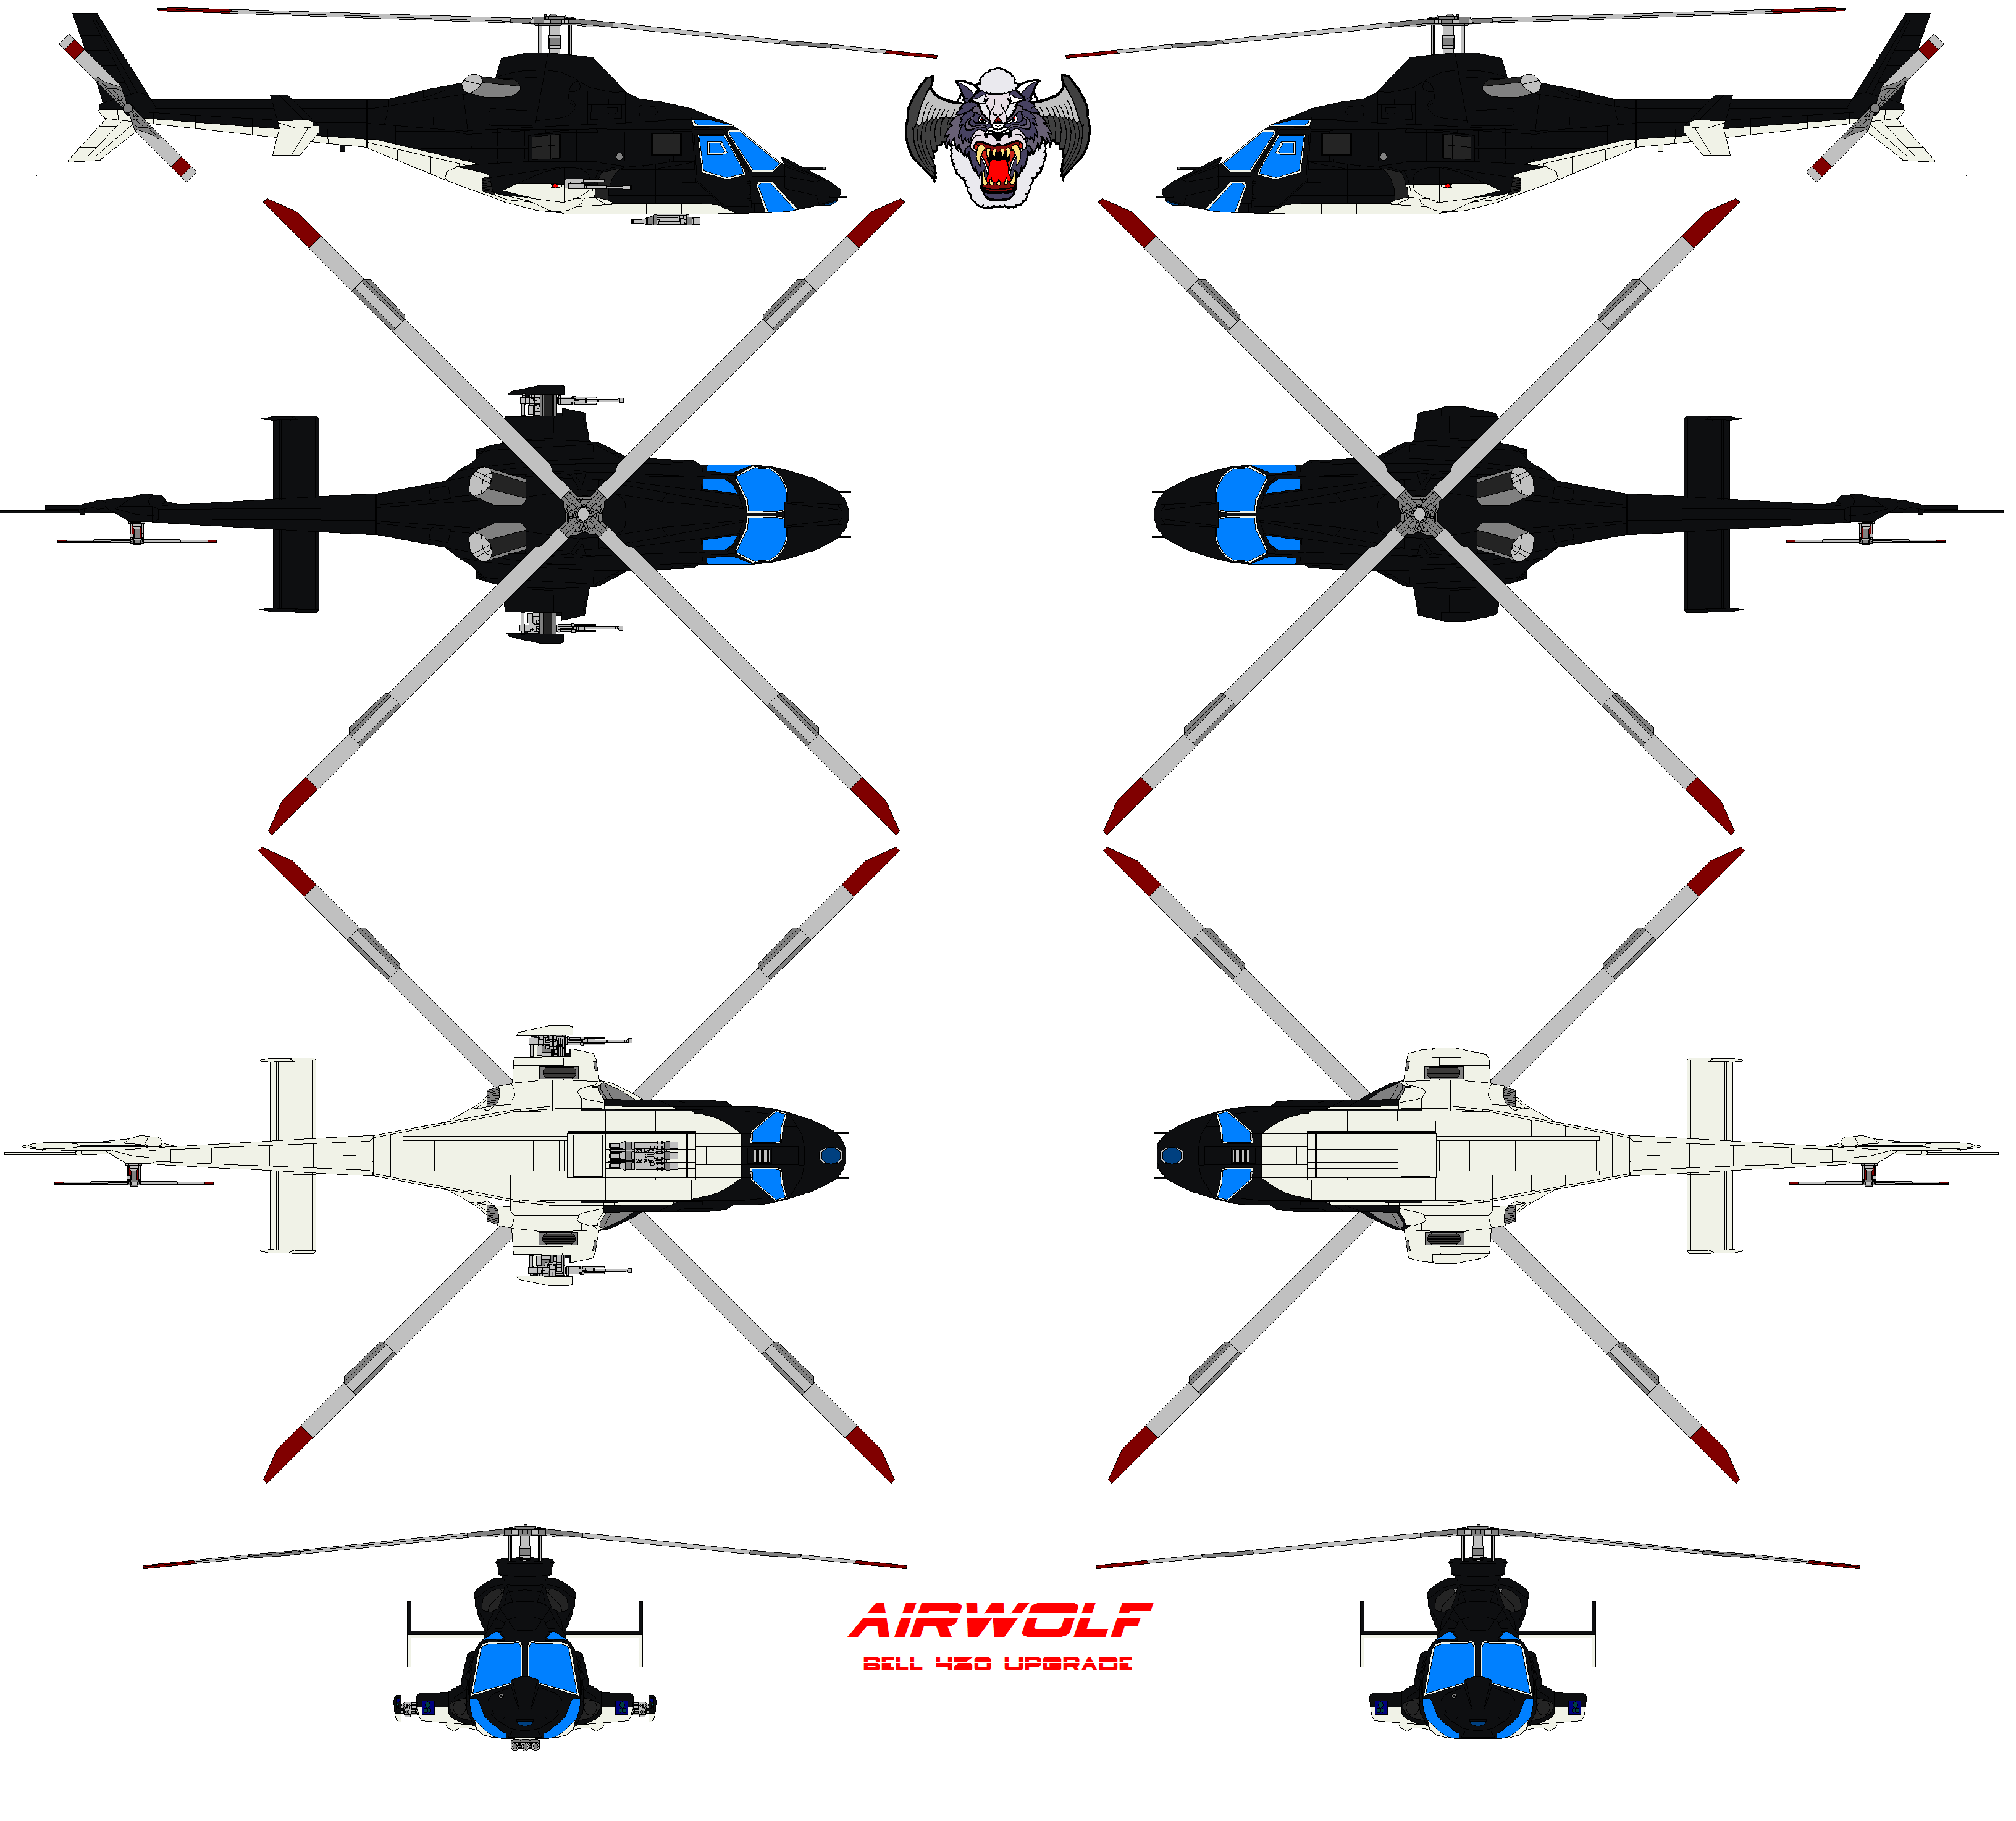 AIRWOLF AH-430 upgrade by bagera3005